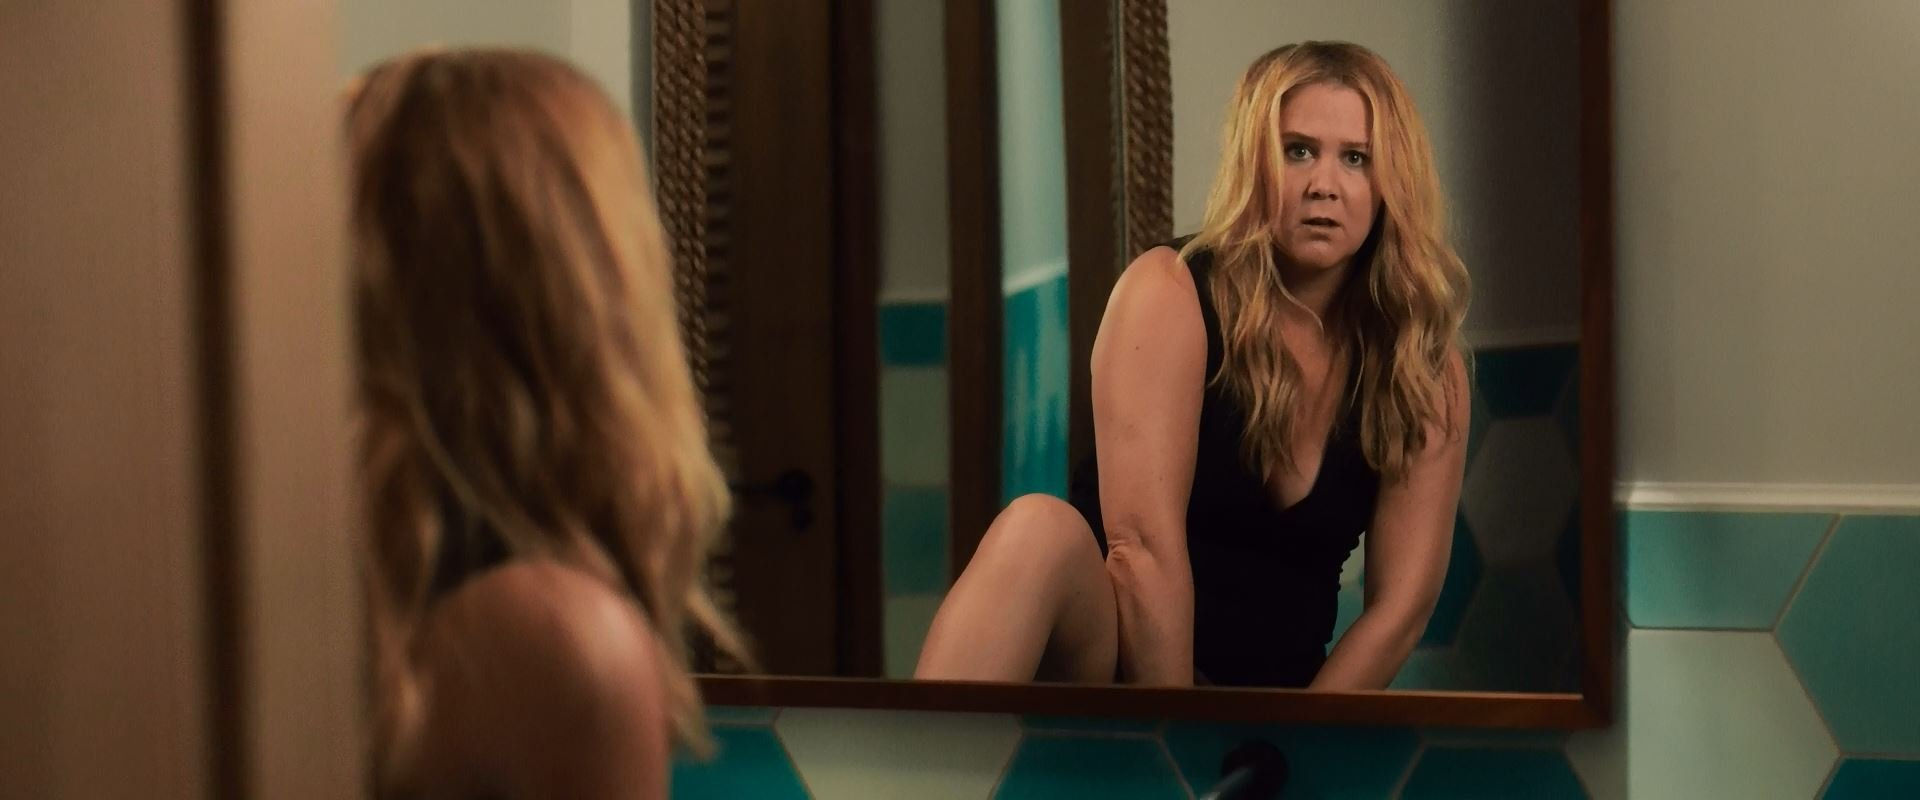 Consider, that Amy schumer naked are